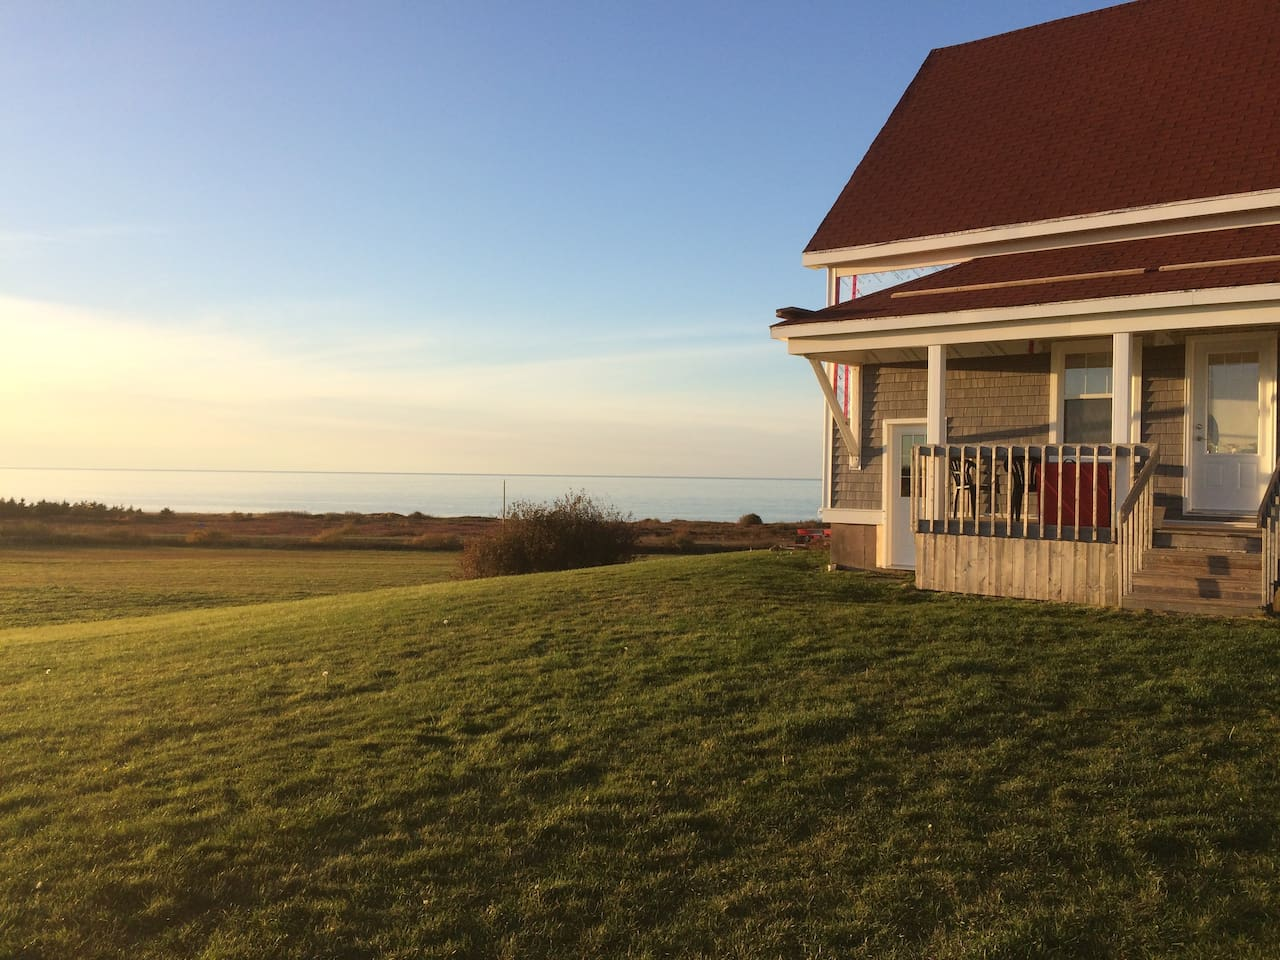 The million dollar view! The Northumberland strait is in the background.  You can walk on the shore a mile in either direction.  The home is over 700 feet from the road, on a ten acre farm. Beach, while enjoying safe privacy for children and pets.